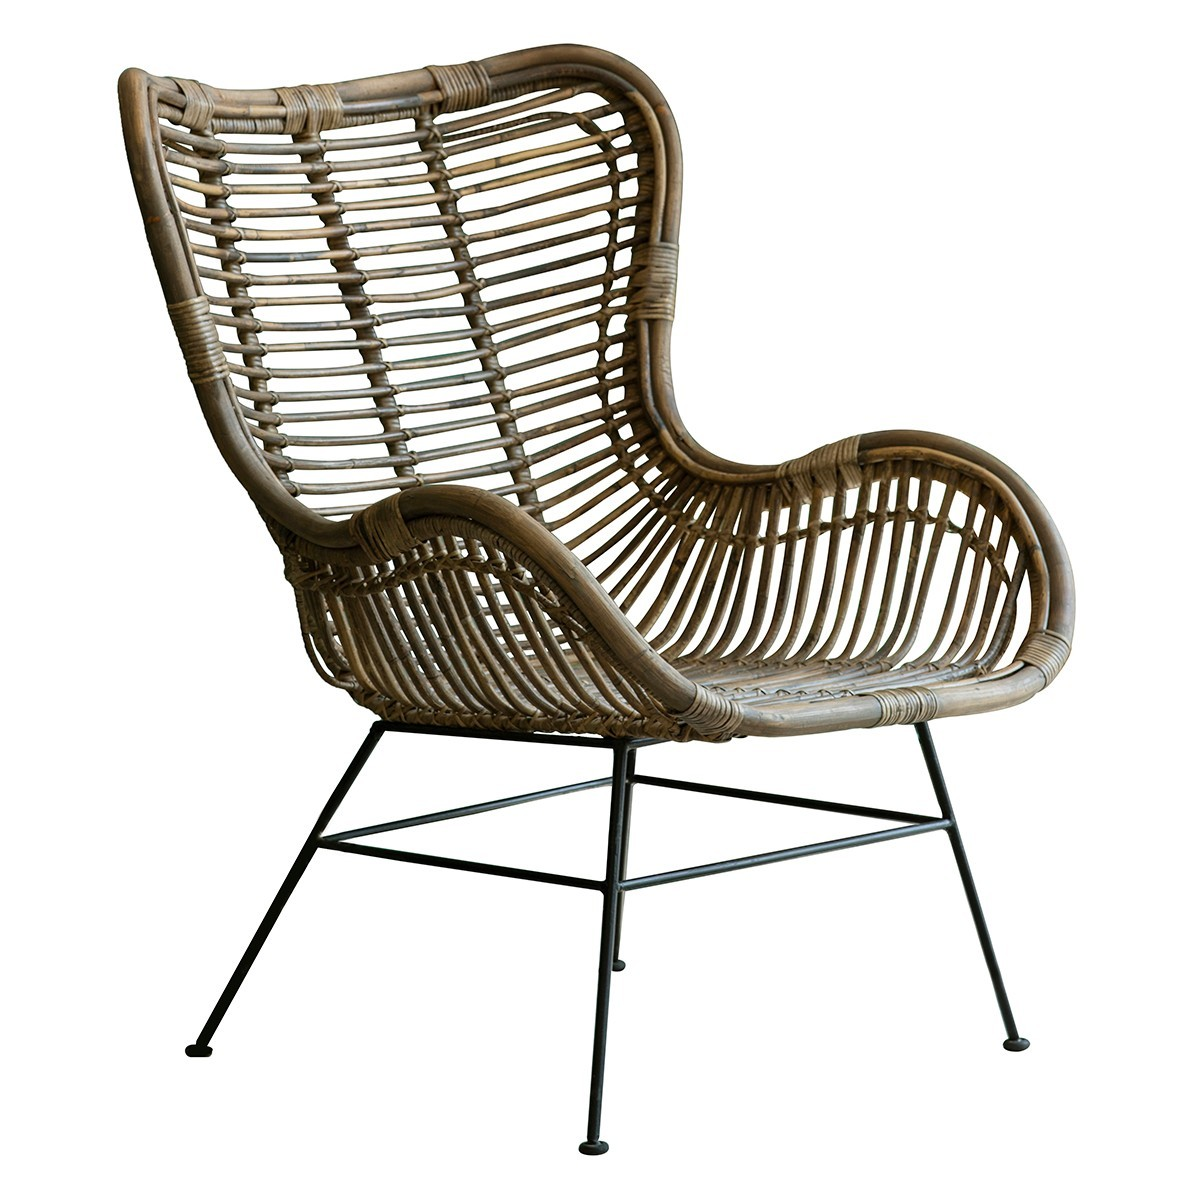 Vestil Rattan & Iron Lounge Chair, Natural